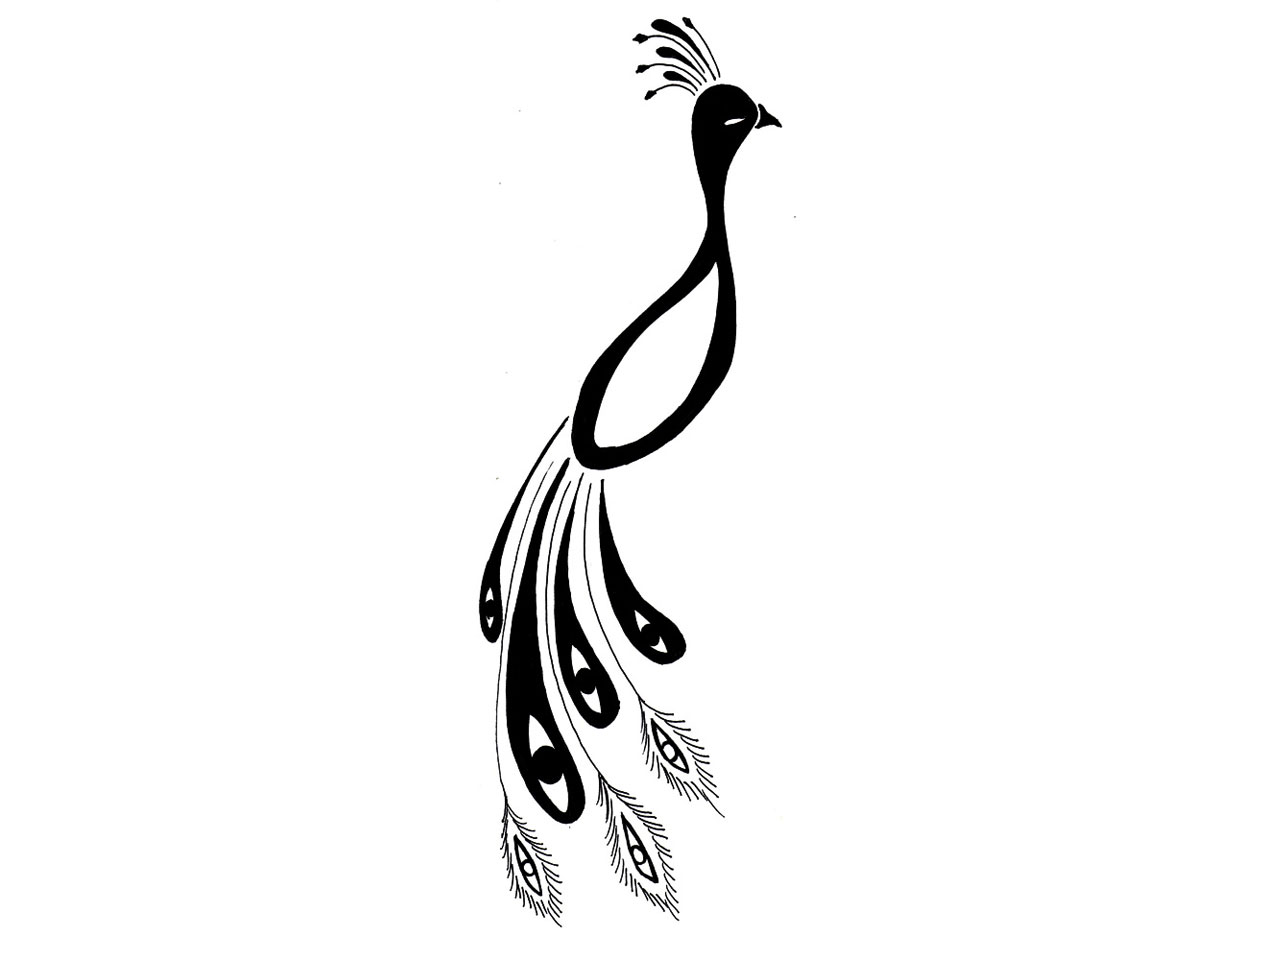 1280x960 Peacock Basic Feather Outline Clipart Clipart Kid Image